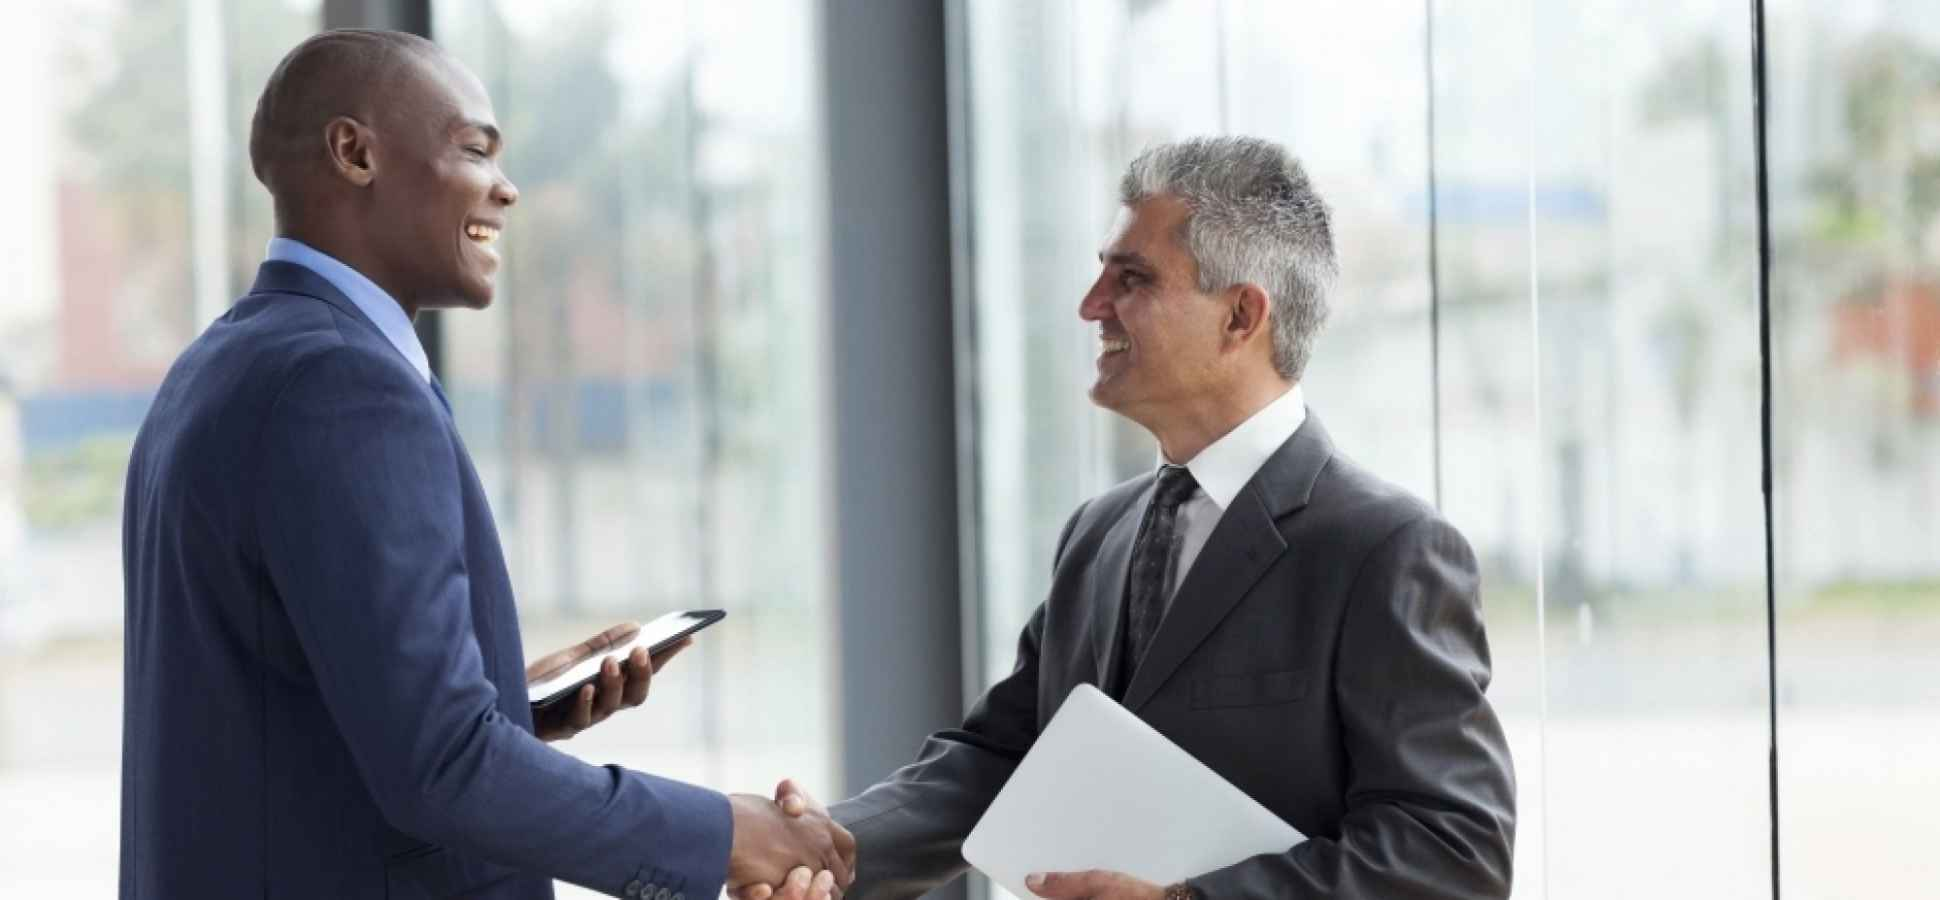 6 Ways Successful People Make A Good First Impression Inc